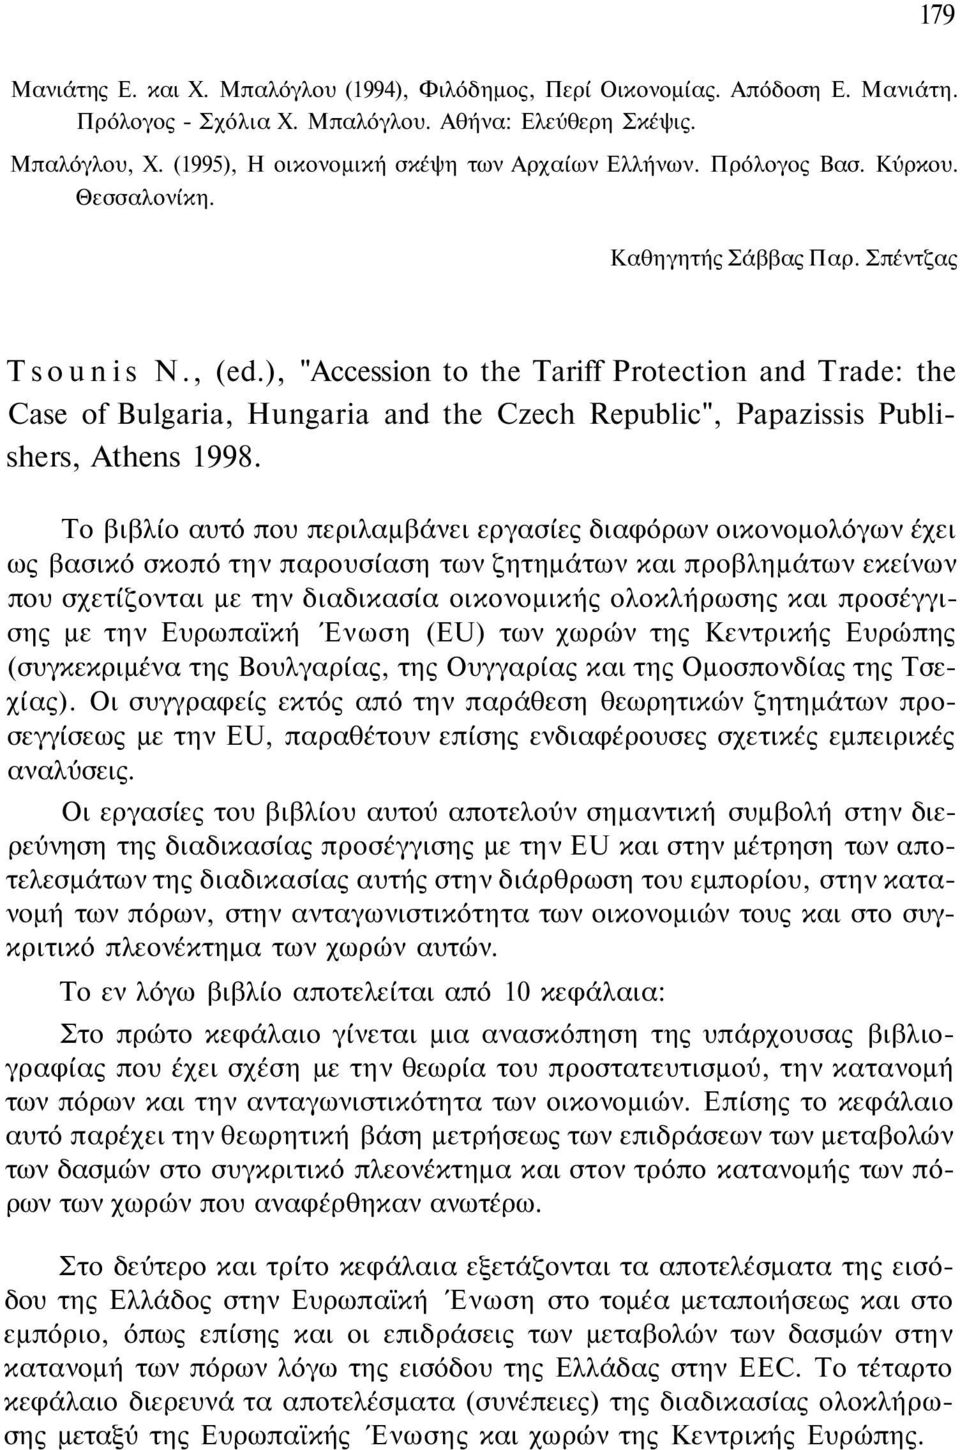 "), ""Accession to the Tariff Protection and Trade: the Case of Bulgaria, Hungaria and the Czech Republic"", Papazissis Publishers, Athens 1998."